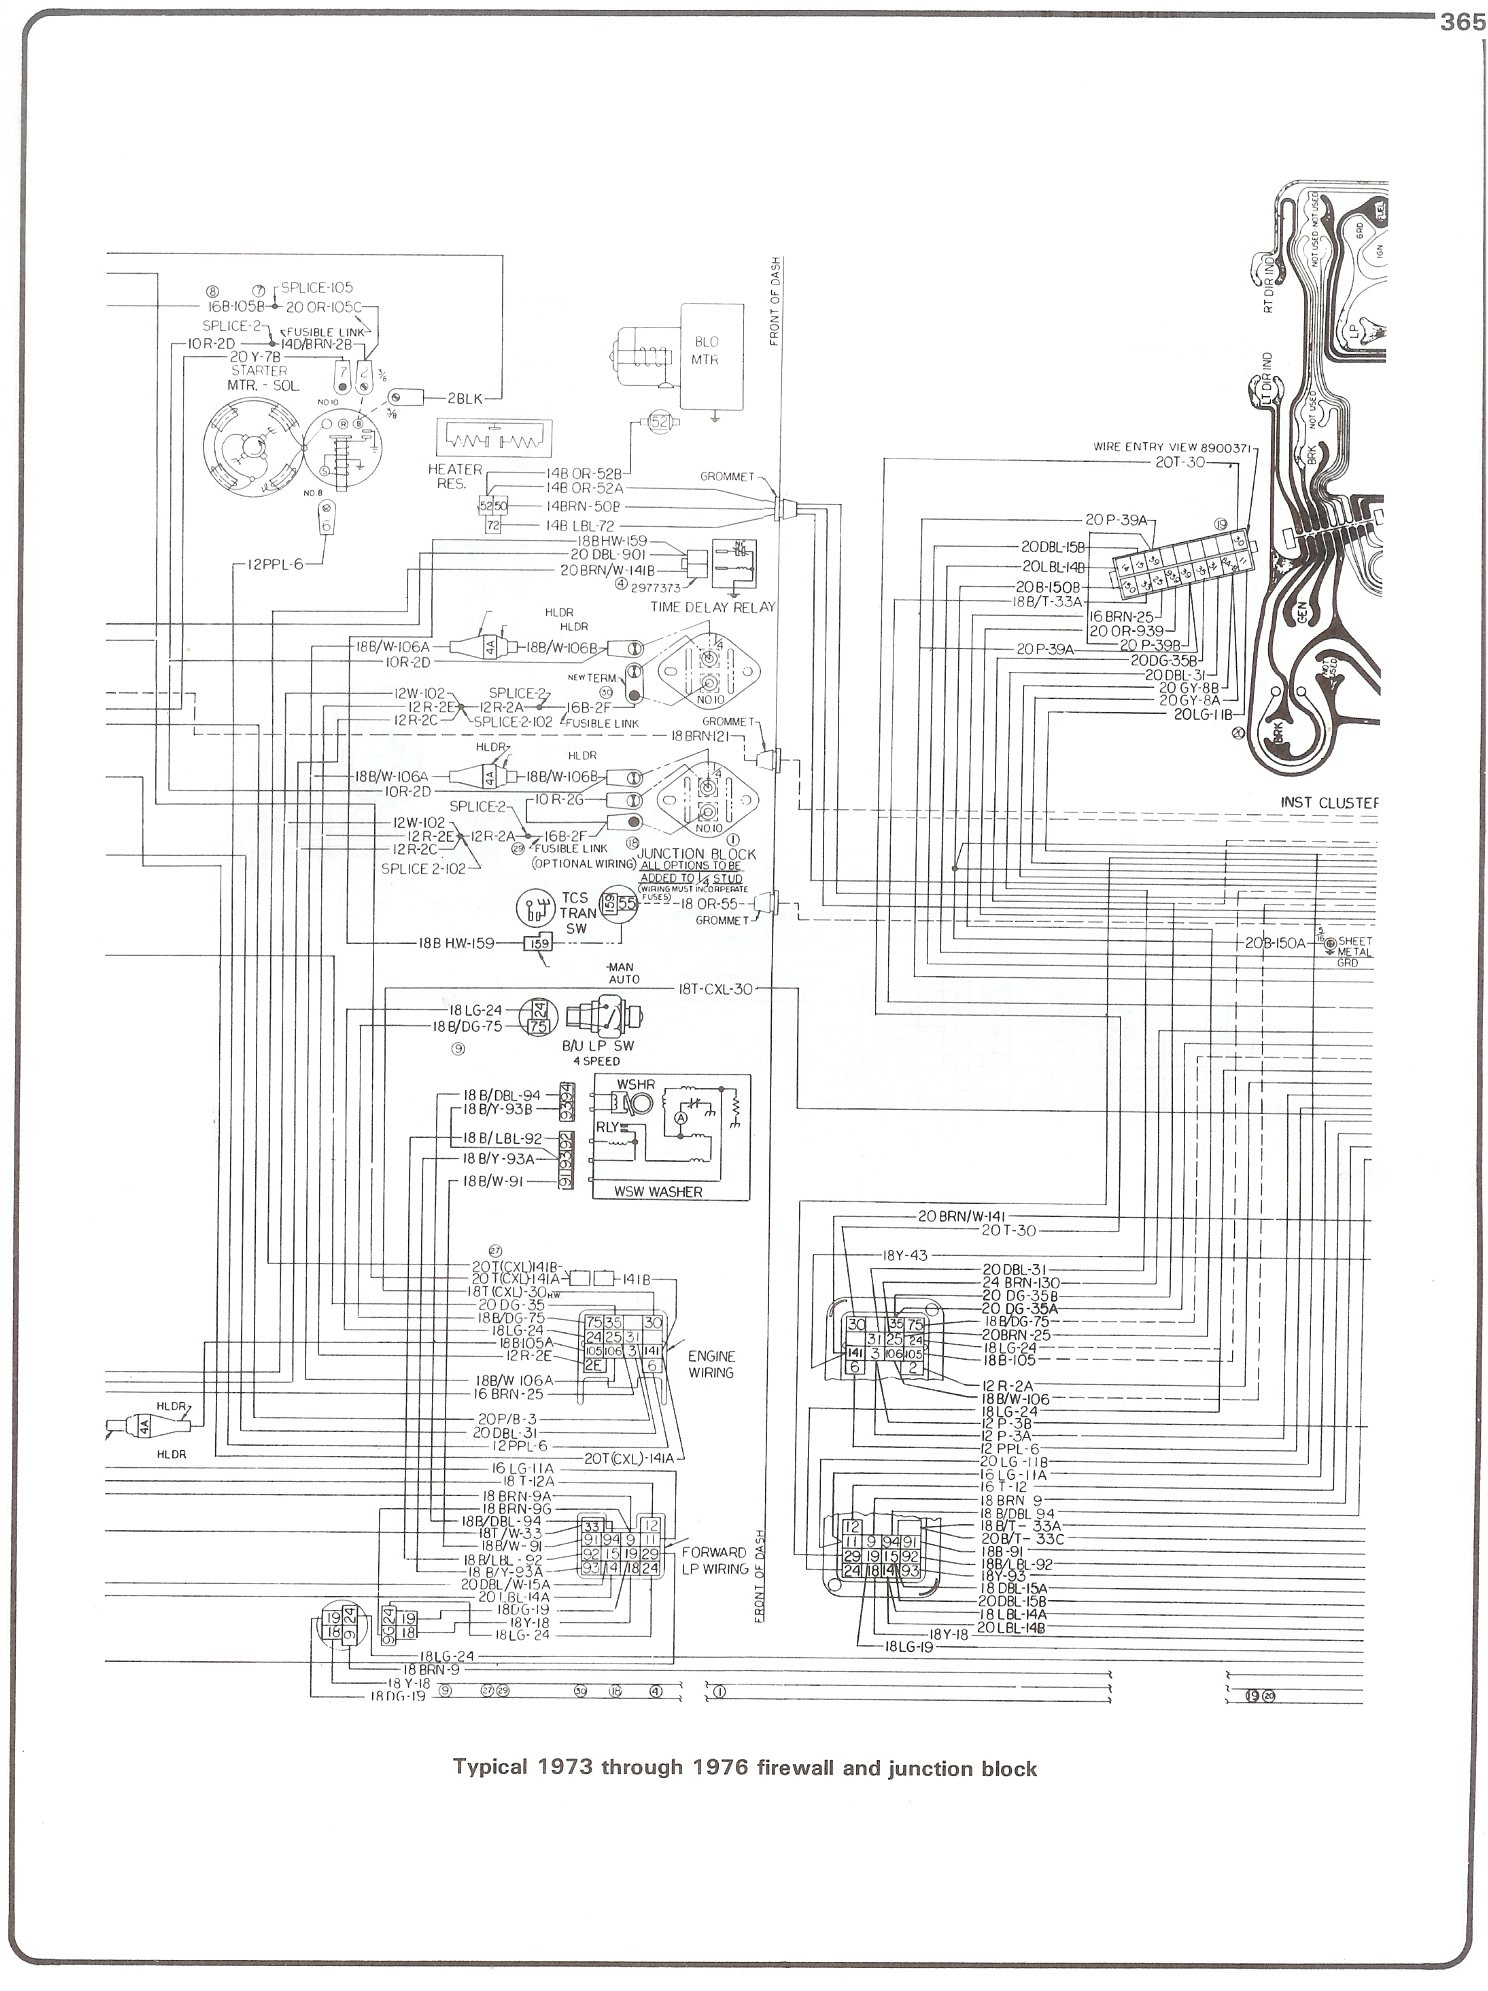 Complete 73 87 Wiring Diagrams 1984 GMC Sierra Power Steering 1984 Gmc  Sierra Wiring Diagram